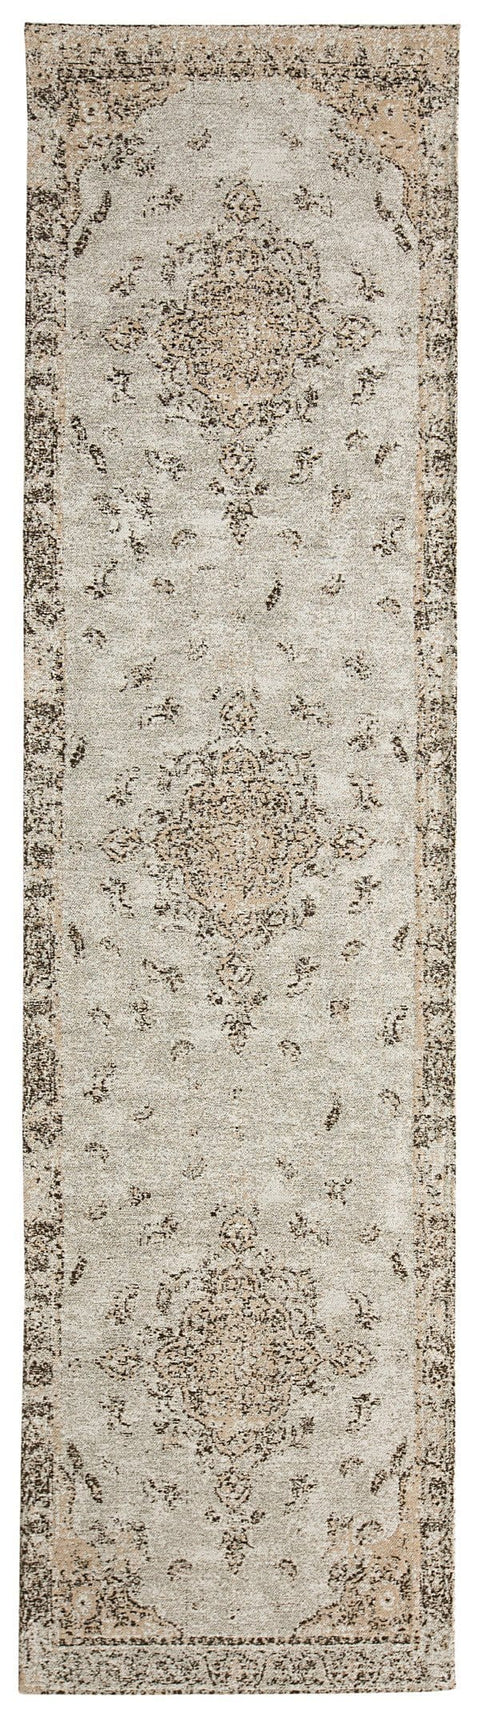 Helena White and Peach Turkish Style Distressed Runner Rug